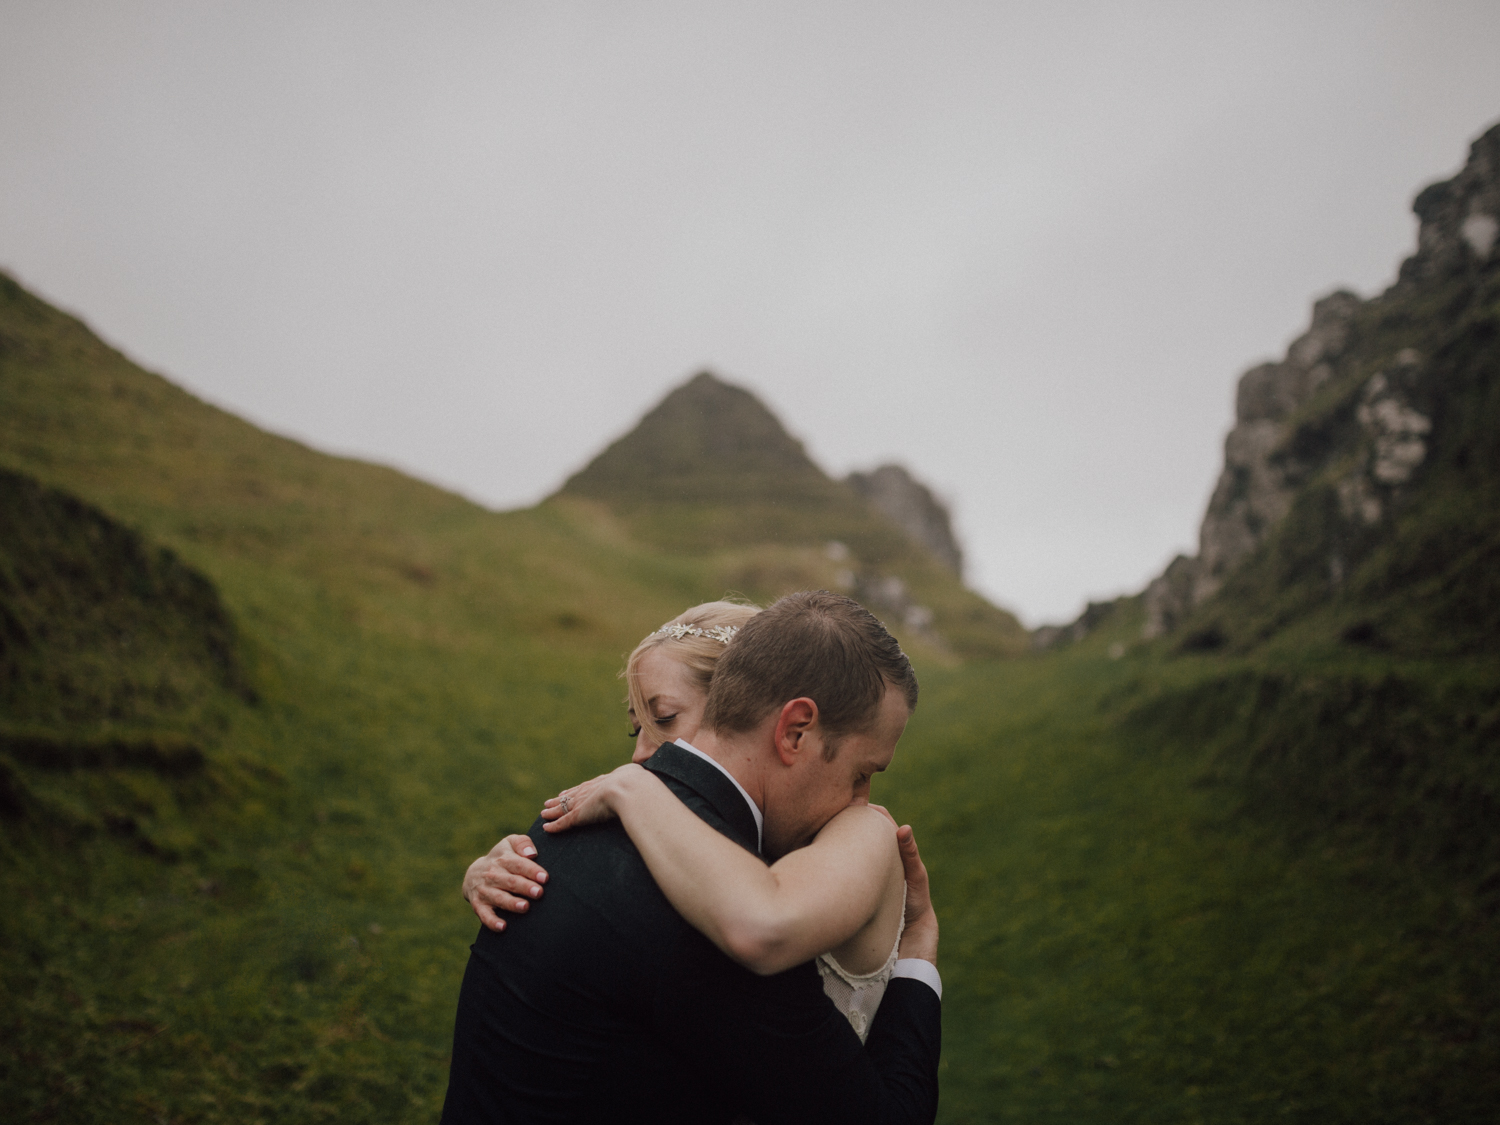 capyture-wedding-photographer-destination-elopement-isle-skye-scotland-344